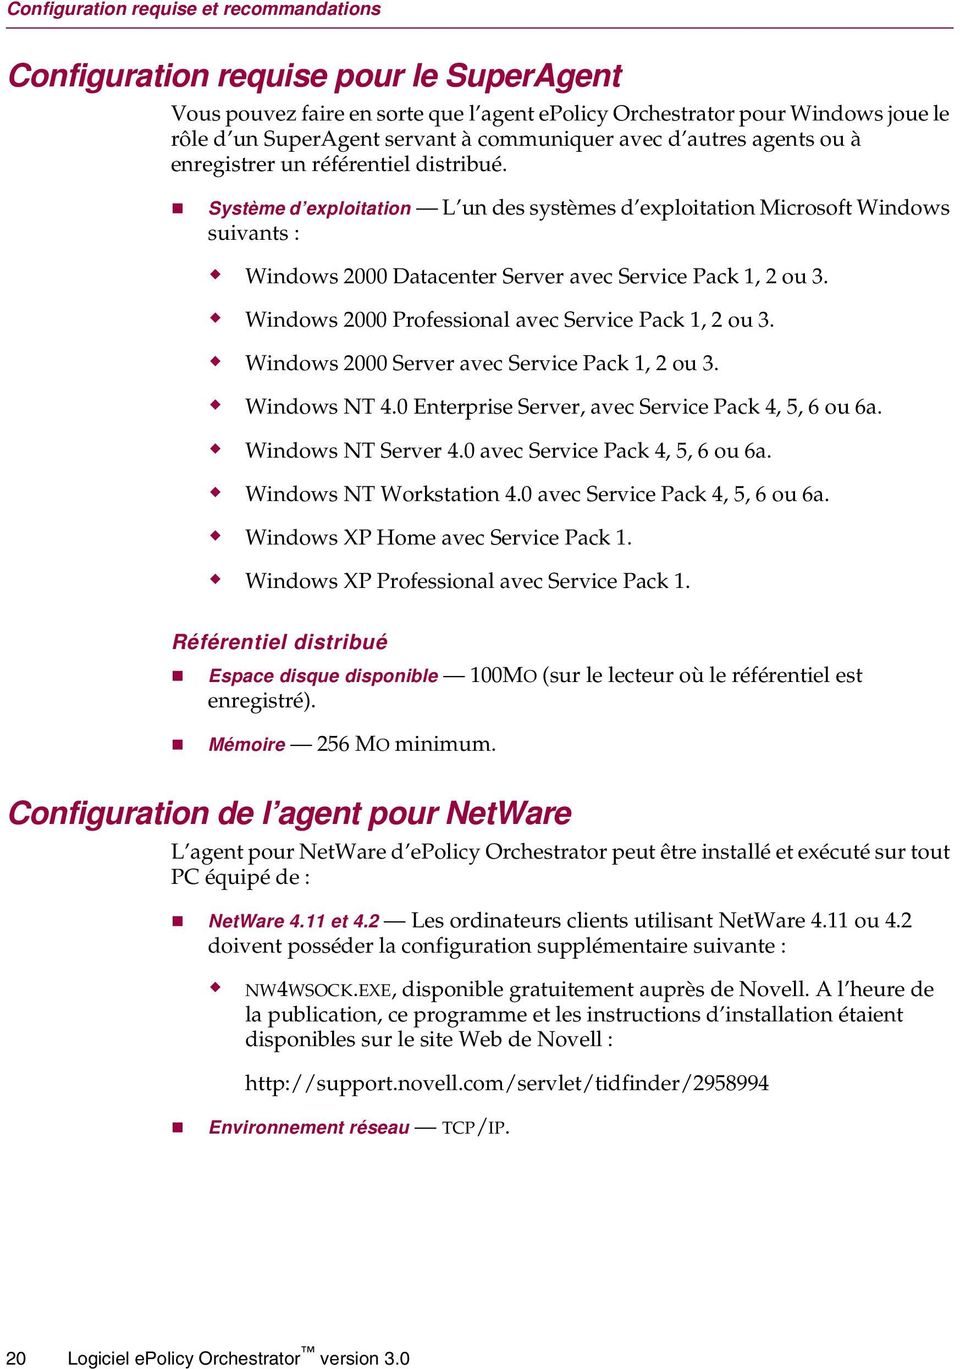 Système d exploitation L un des systèmes d exploitation Microsoft Windows suivants : Windows 2000 Datacenter Server avec Service Pack 1, 2 ou 3. Windows 2000 Professional avec Service Pack 1, 2 ou 3.